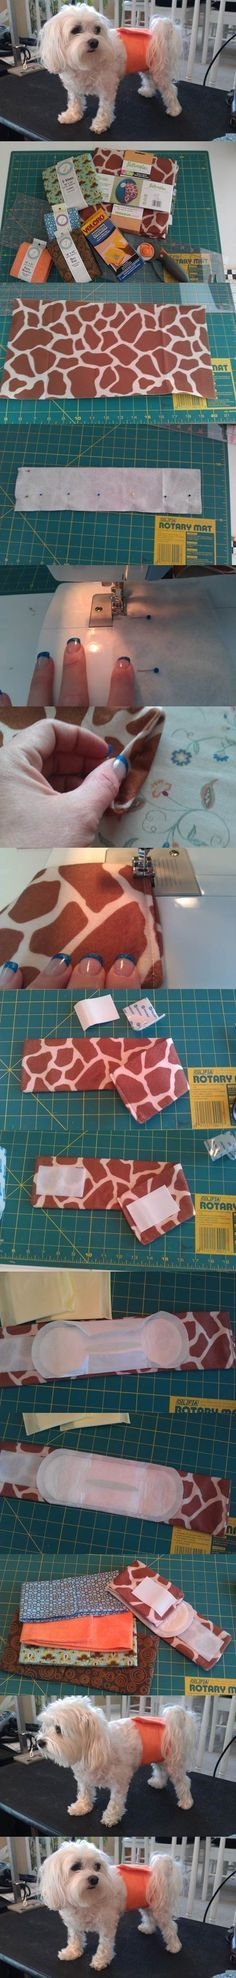 DIY Belly Bands for Dogs 2